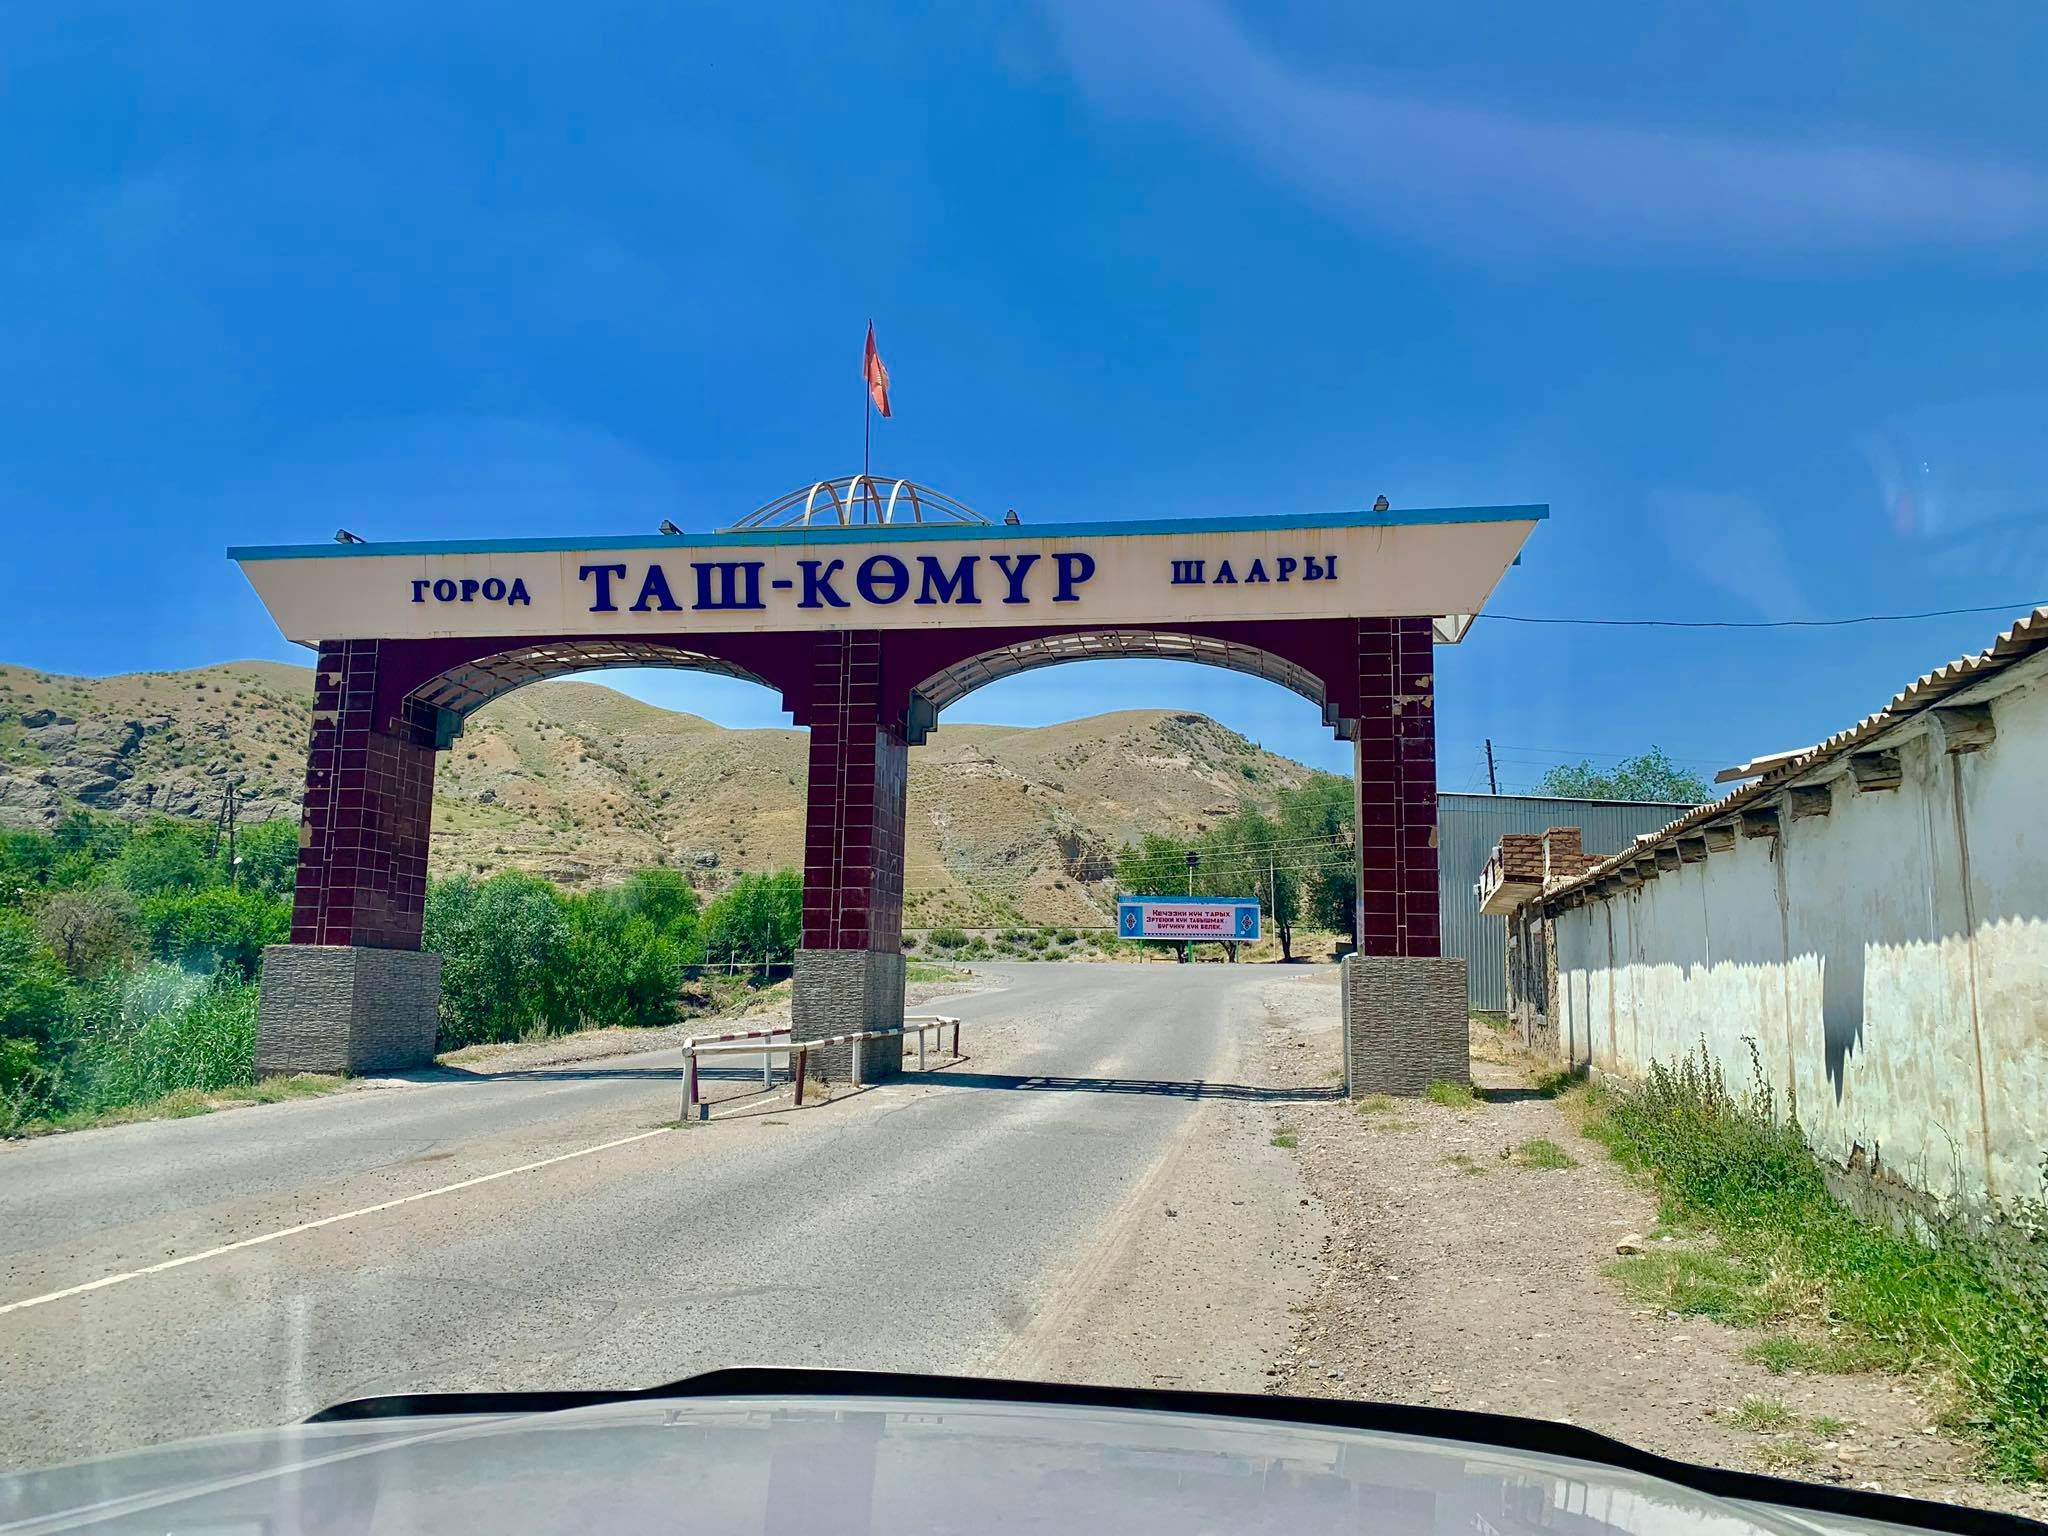 Kach Solo Travels in 2019 Roadtrip to Sary Chelek Lake which is 330 km. from Osh, Kyrgyzstan6.jpg